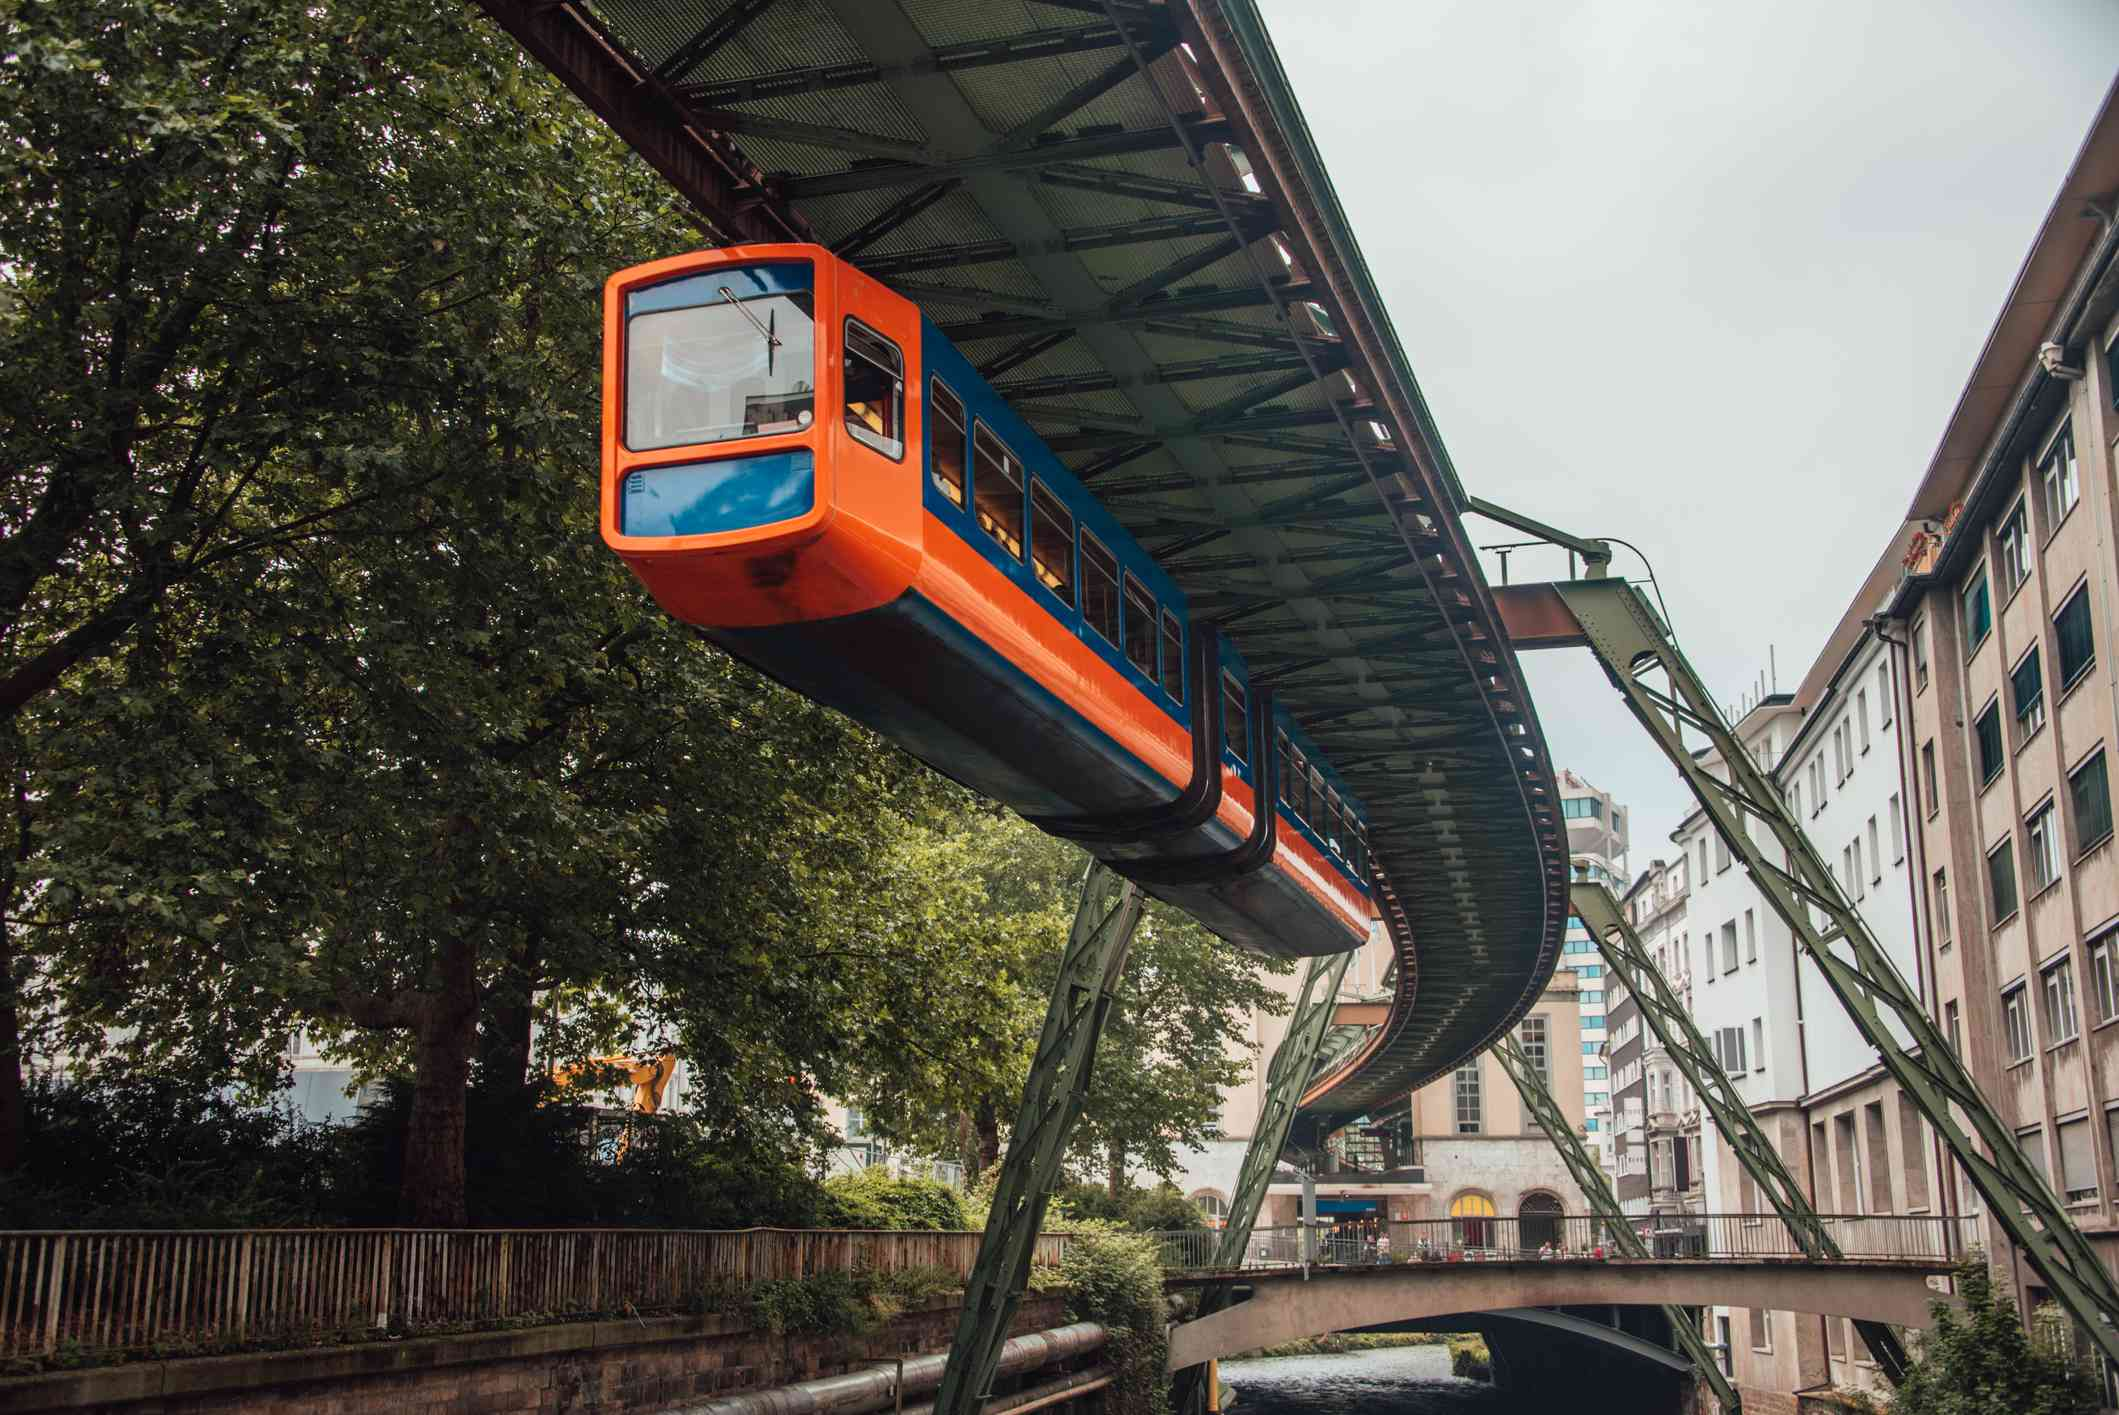 Overhead railway running over canal in Wuppertal, Germany